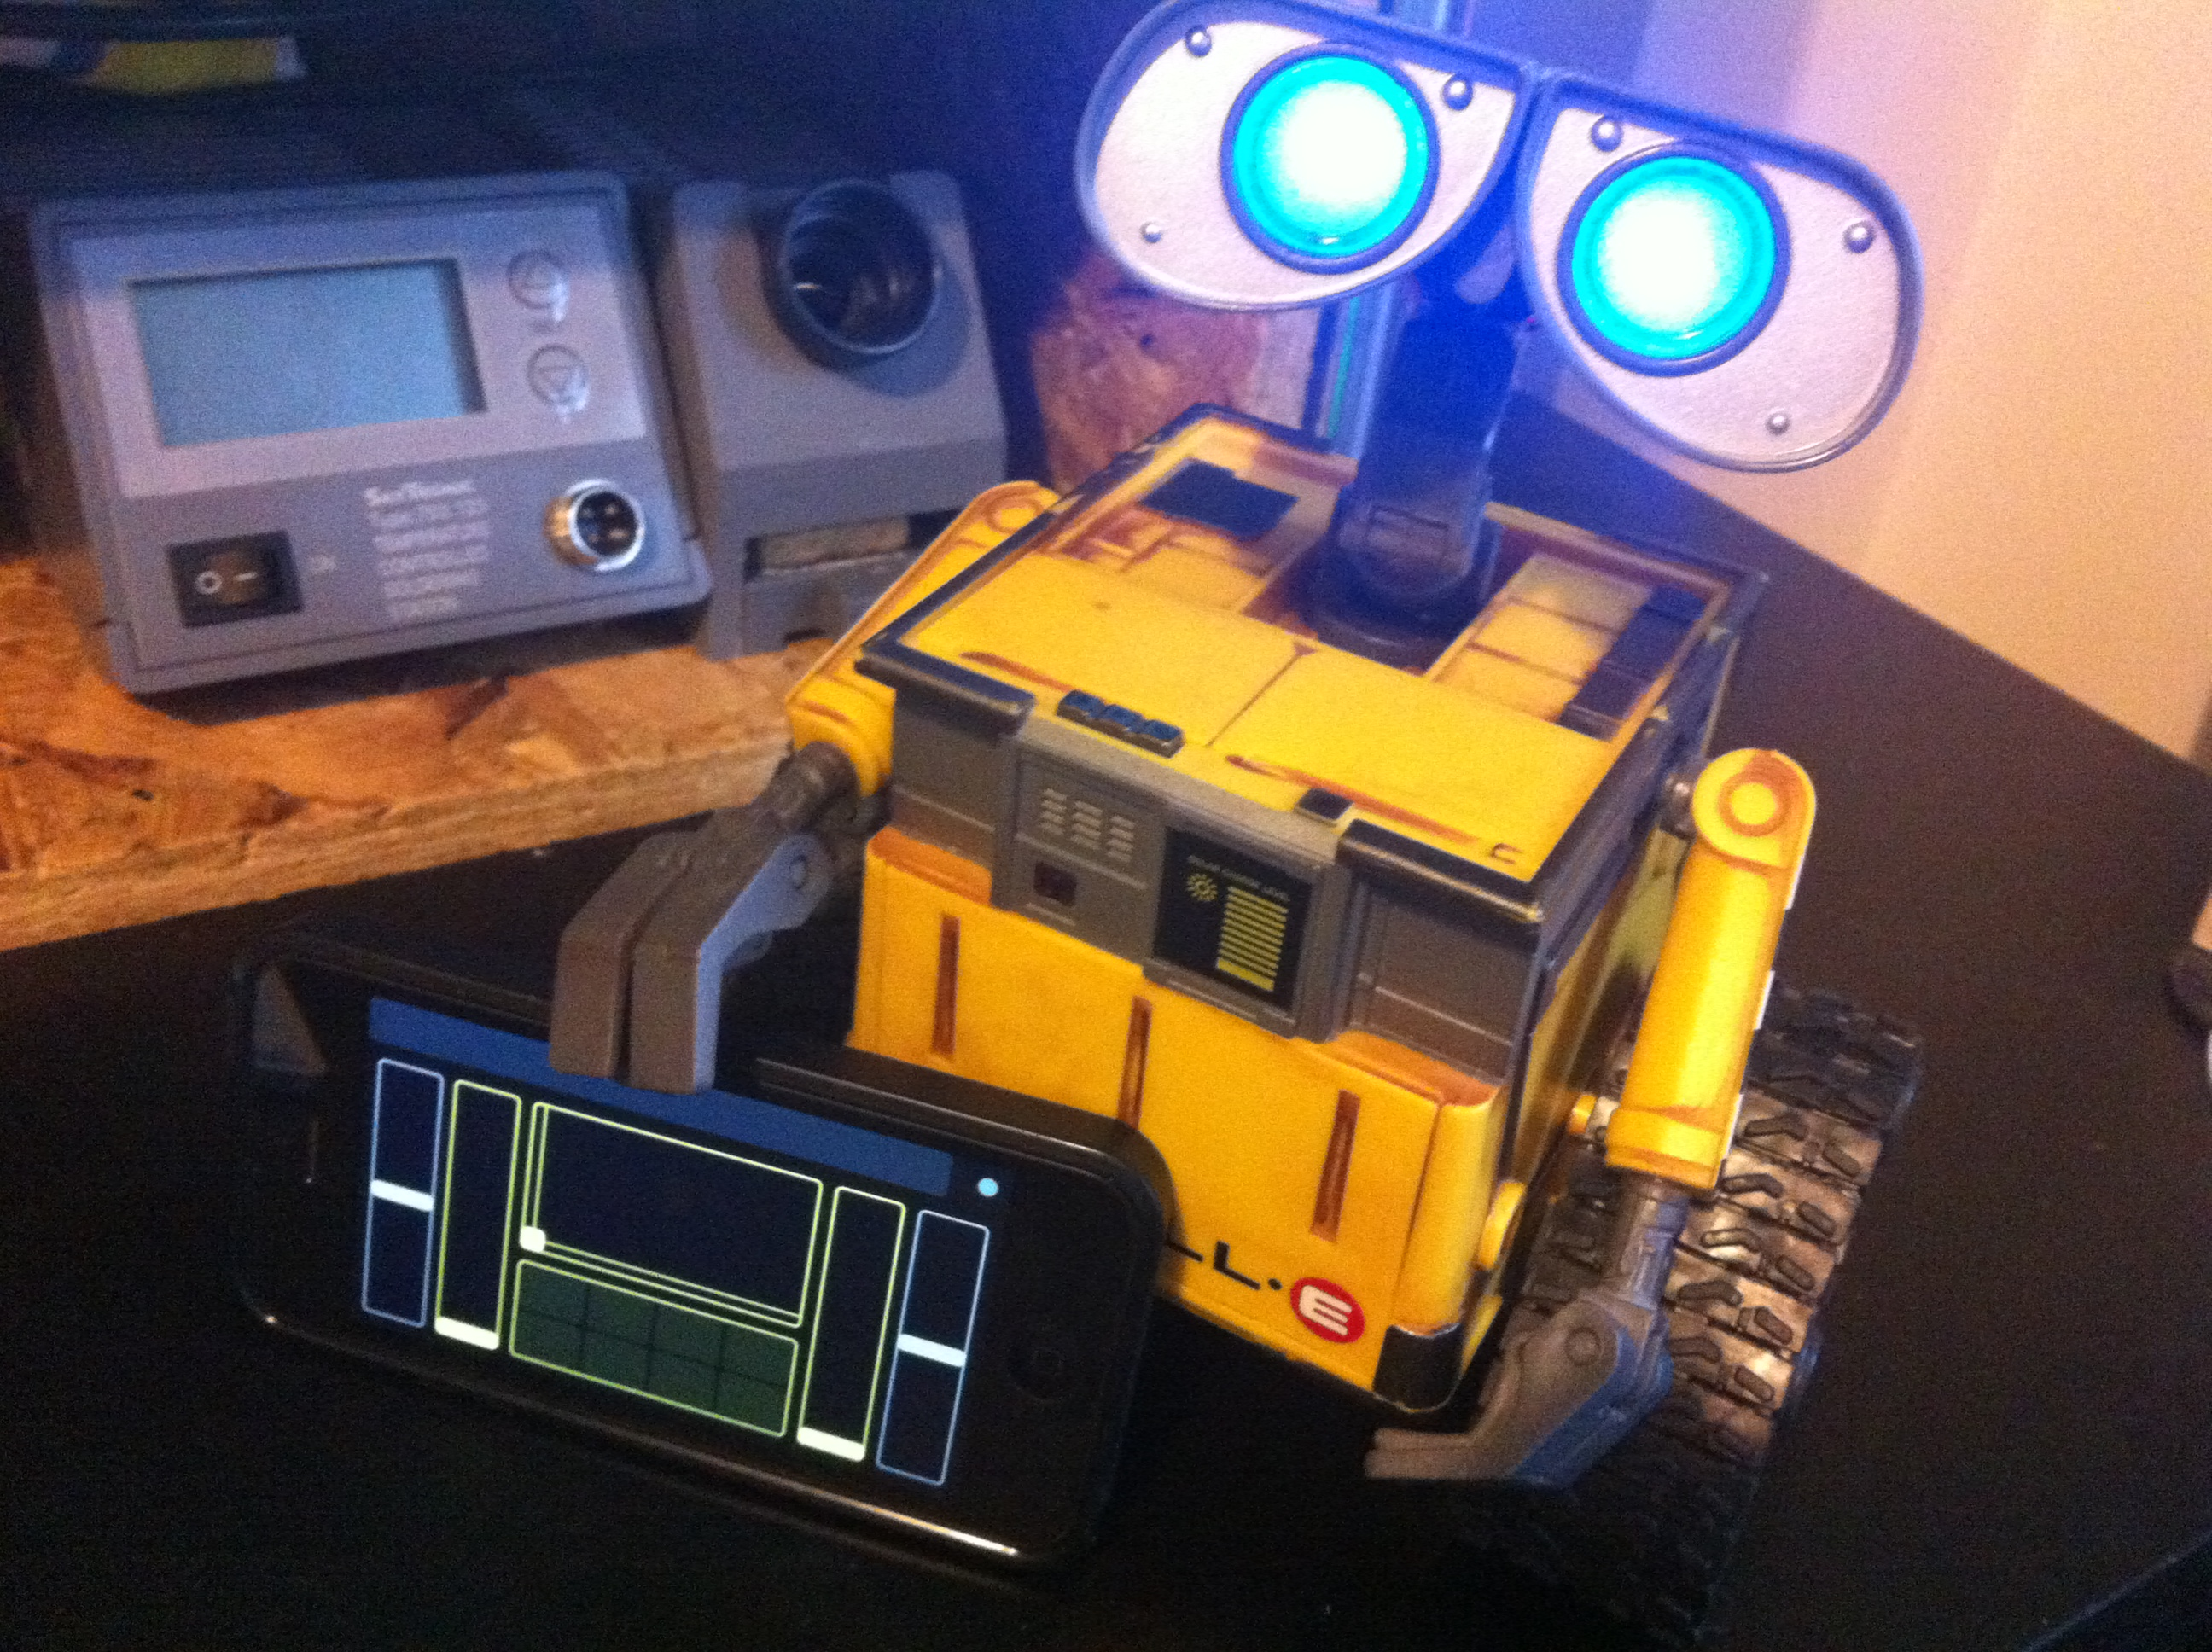 Picture of Spark-e - a Spark Core + Touch OSC Controlled Wall-e Toy Robot Conversion